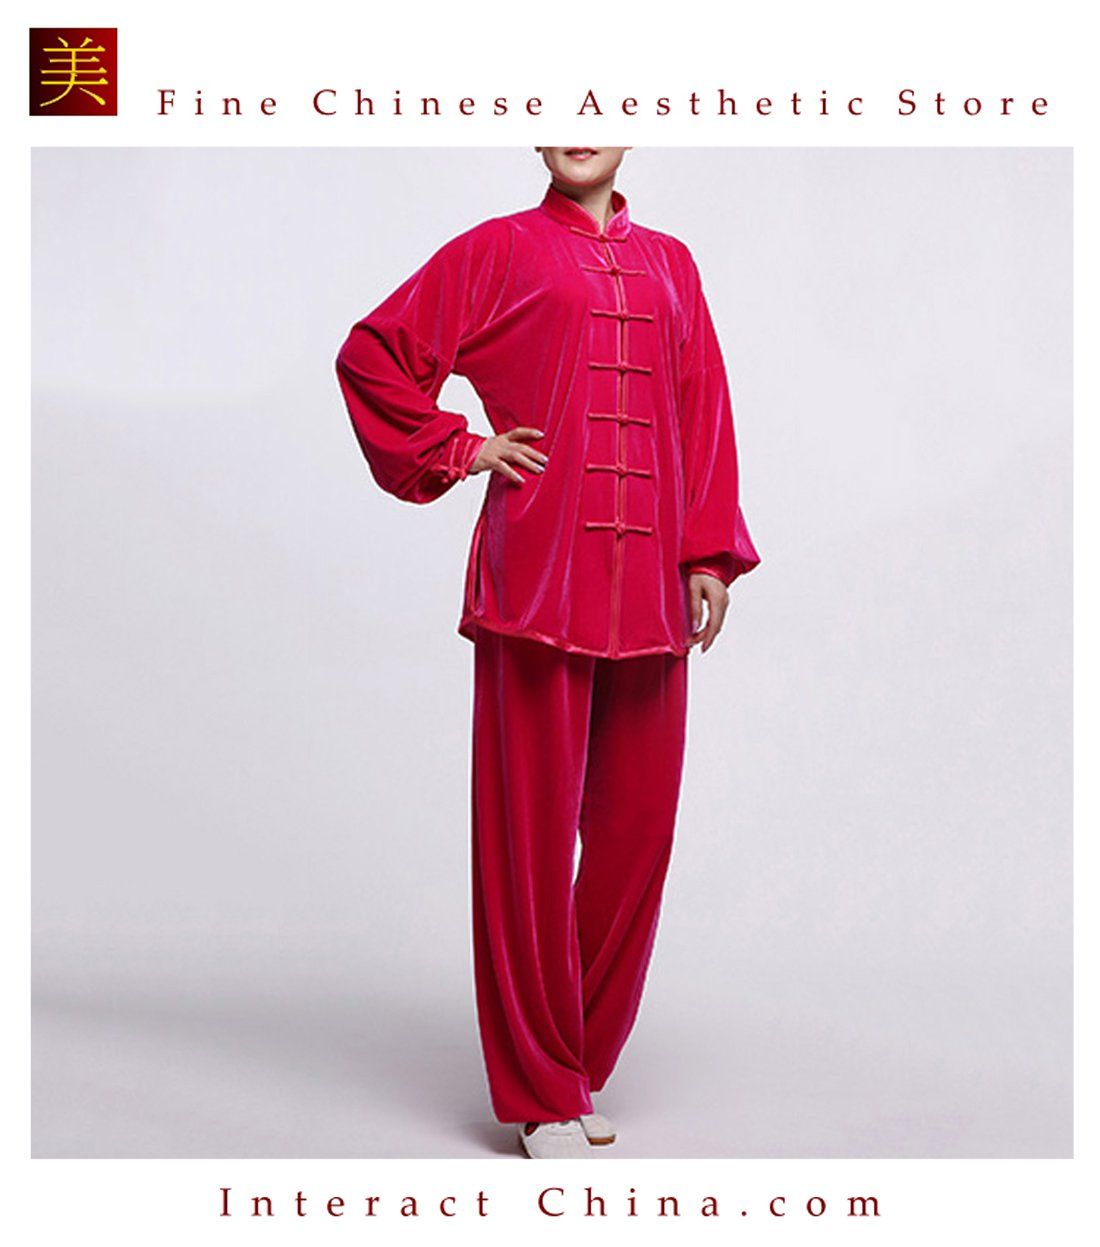 Flowing Unisex Velvet Suit for Tai Chi and Leisure Time in Chinese Style #106